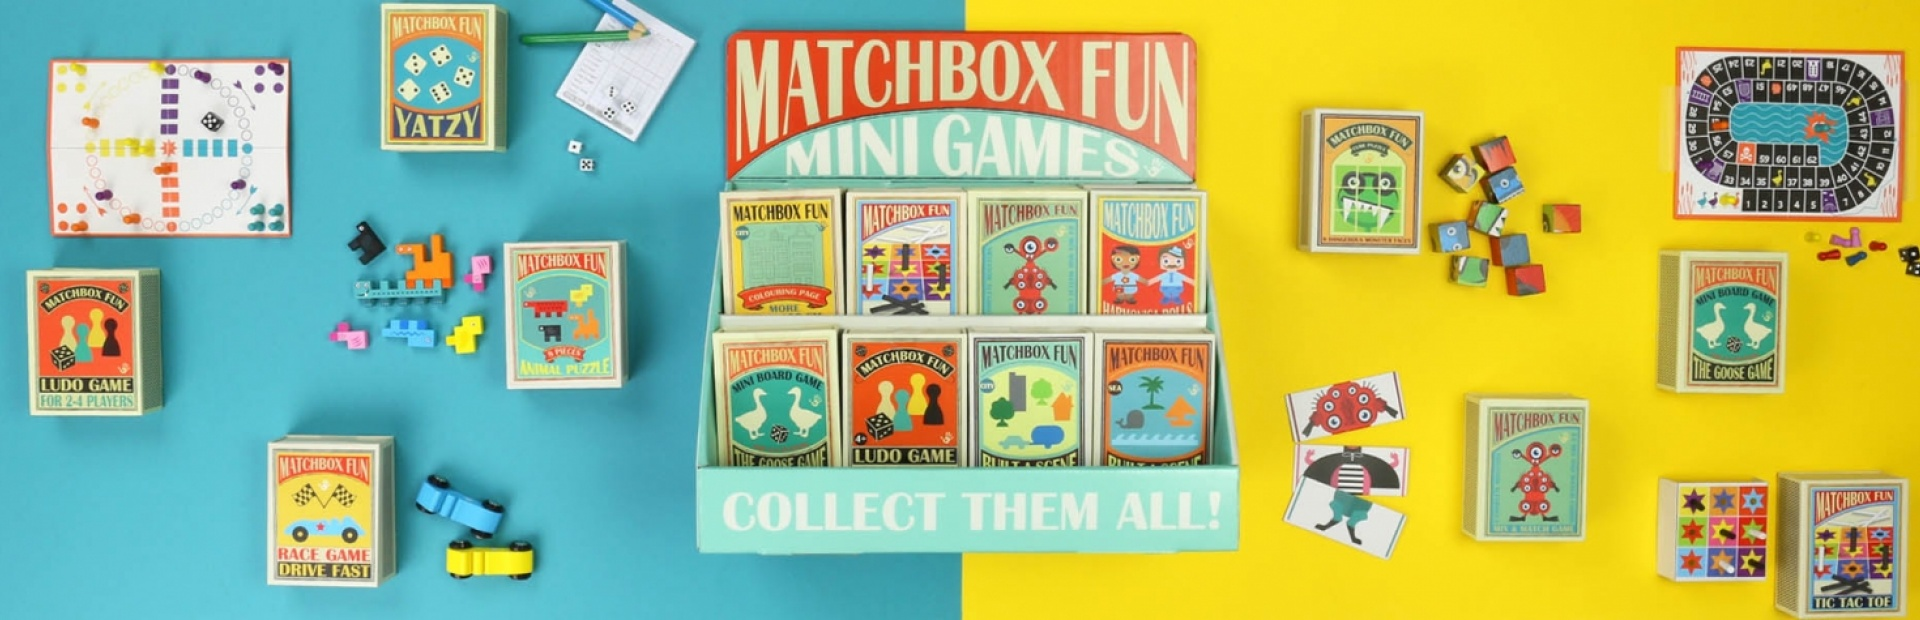 Matchbox fun!